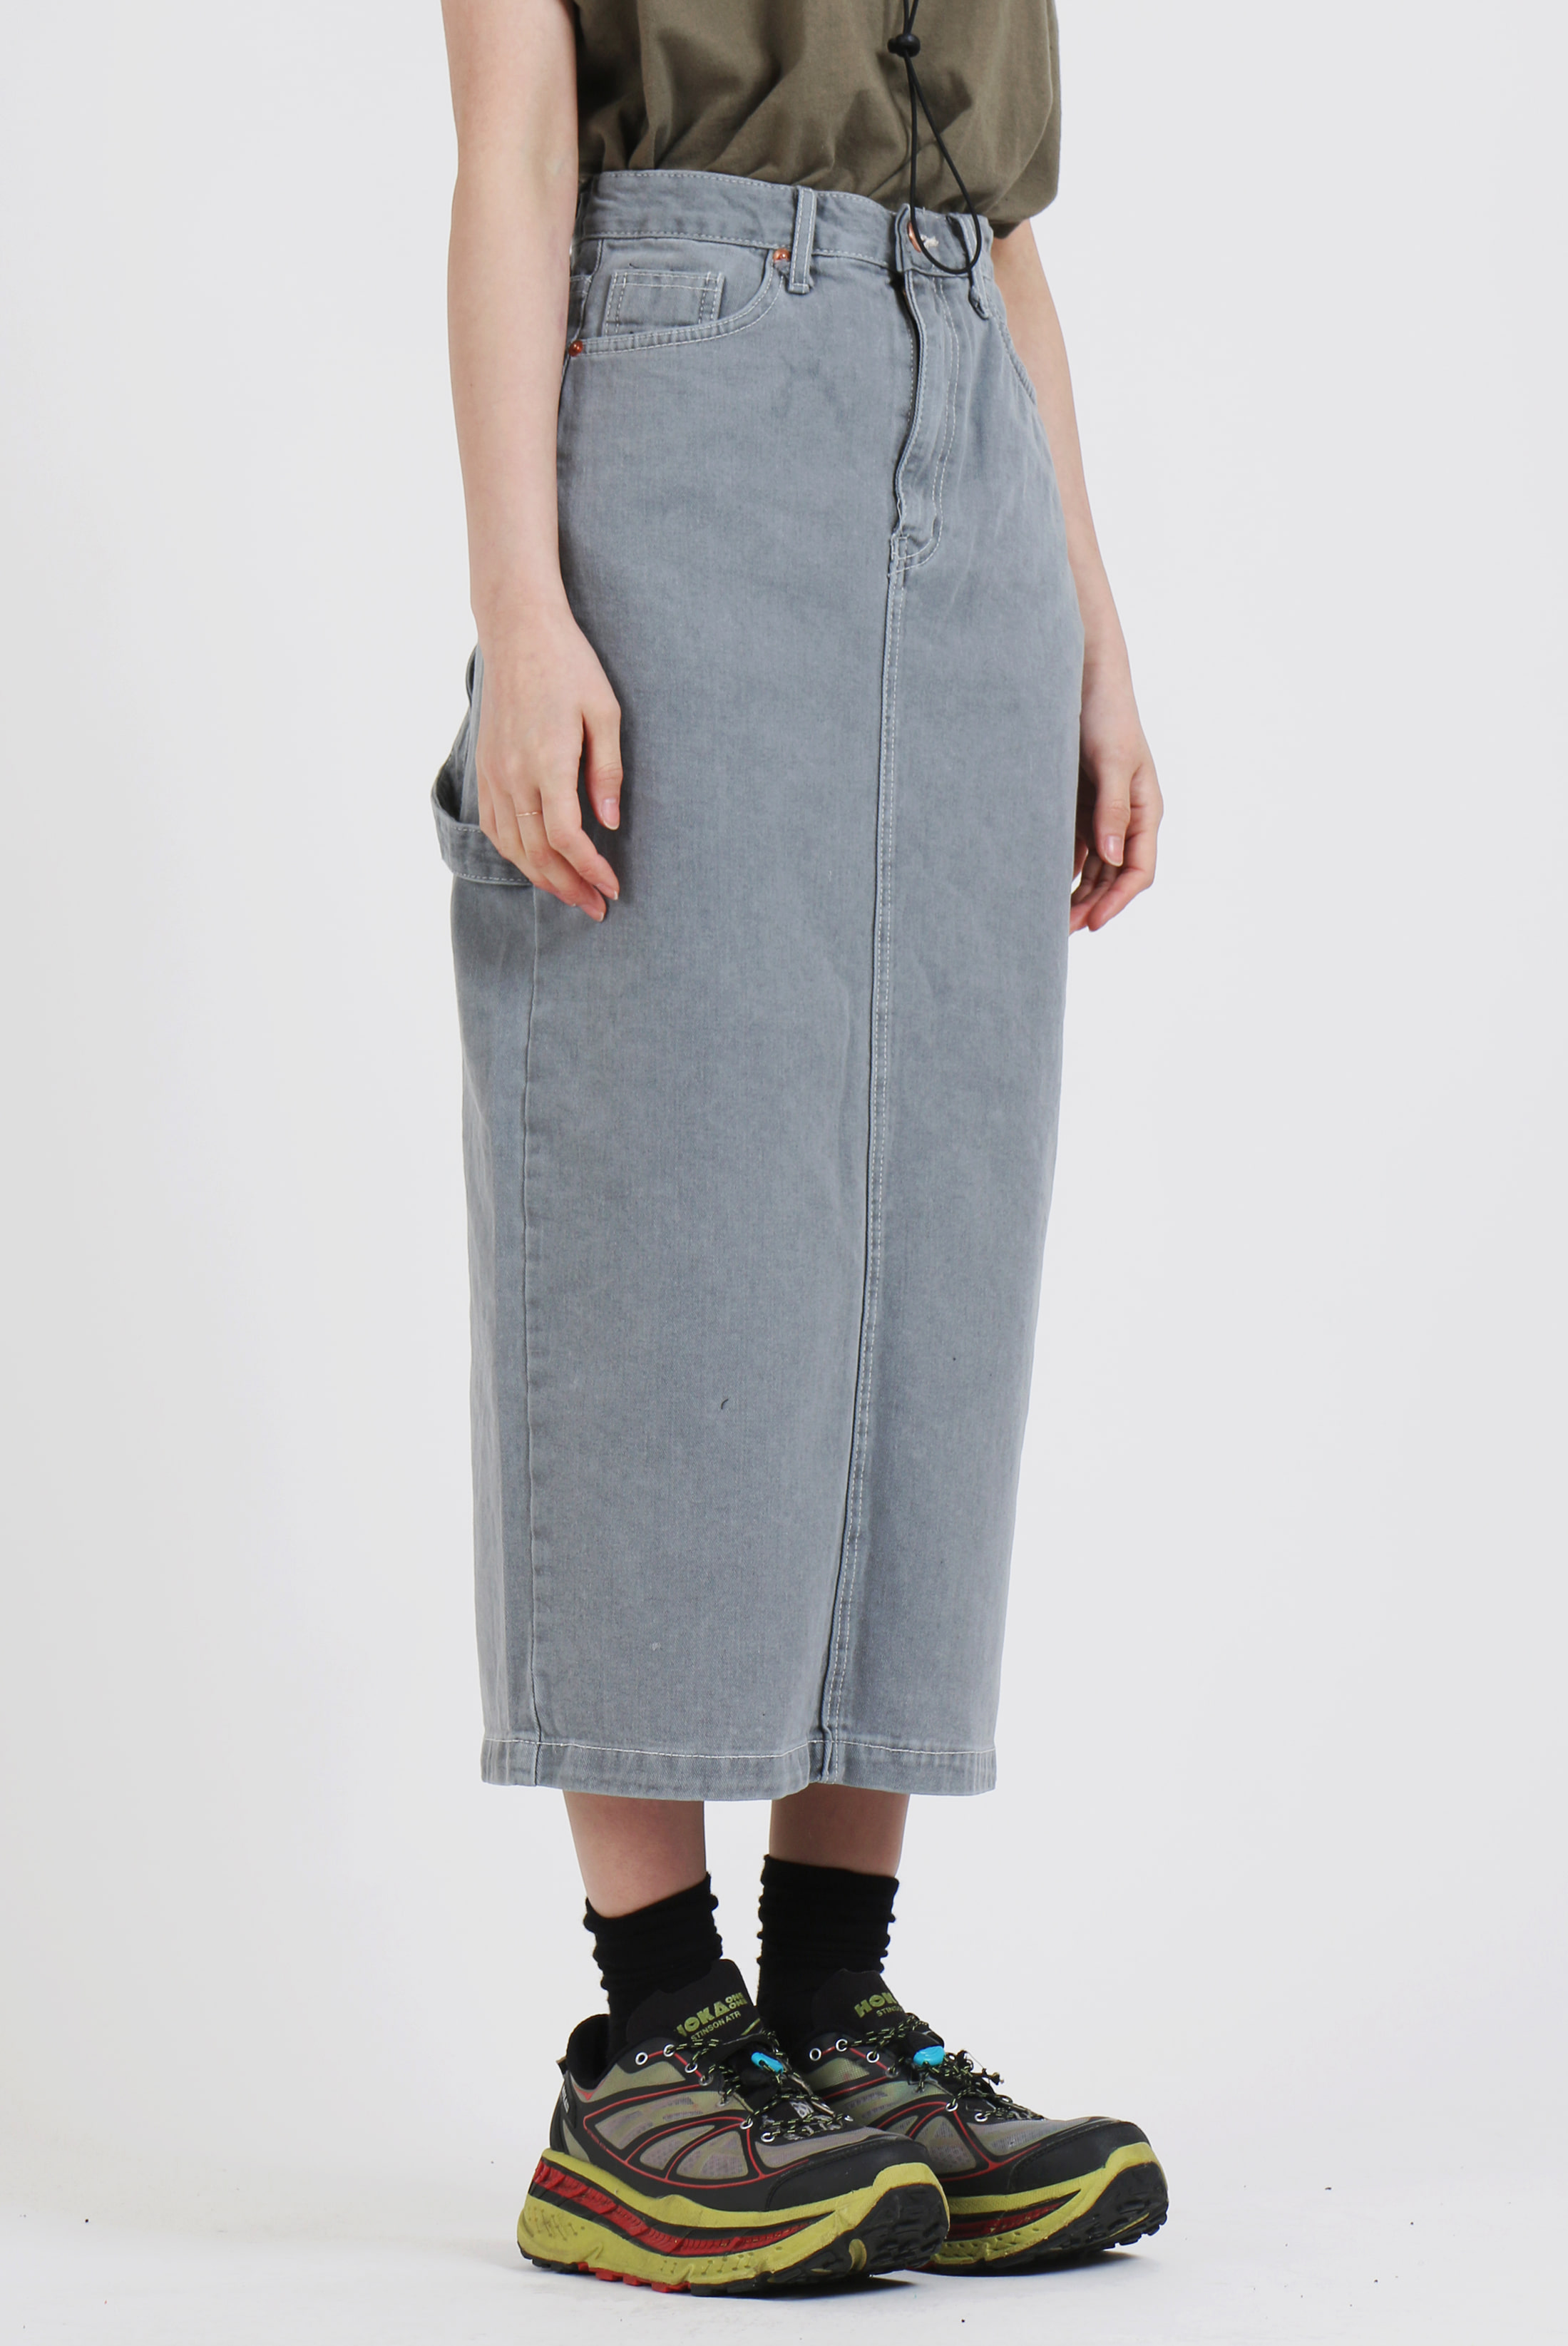 (W) Work_Denim Gray Skirt